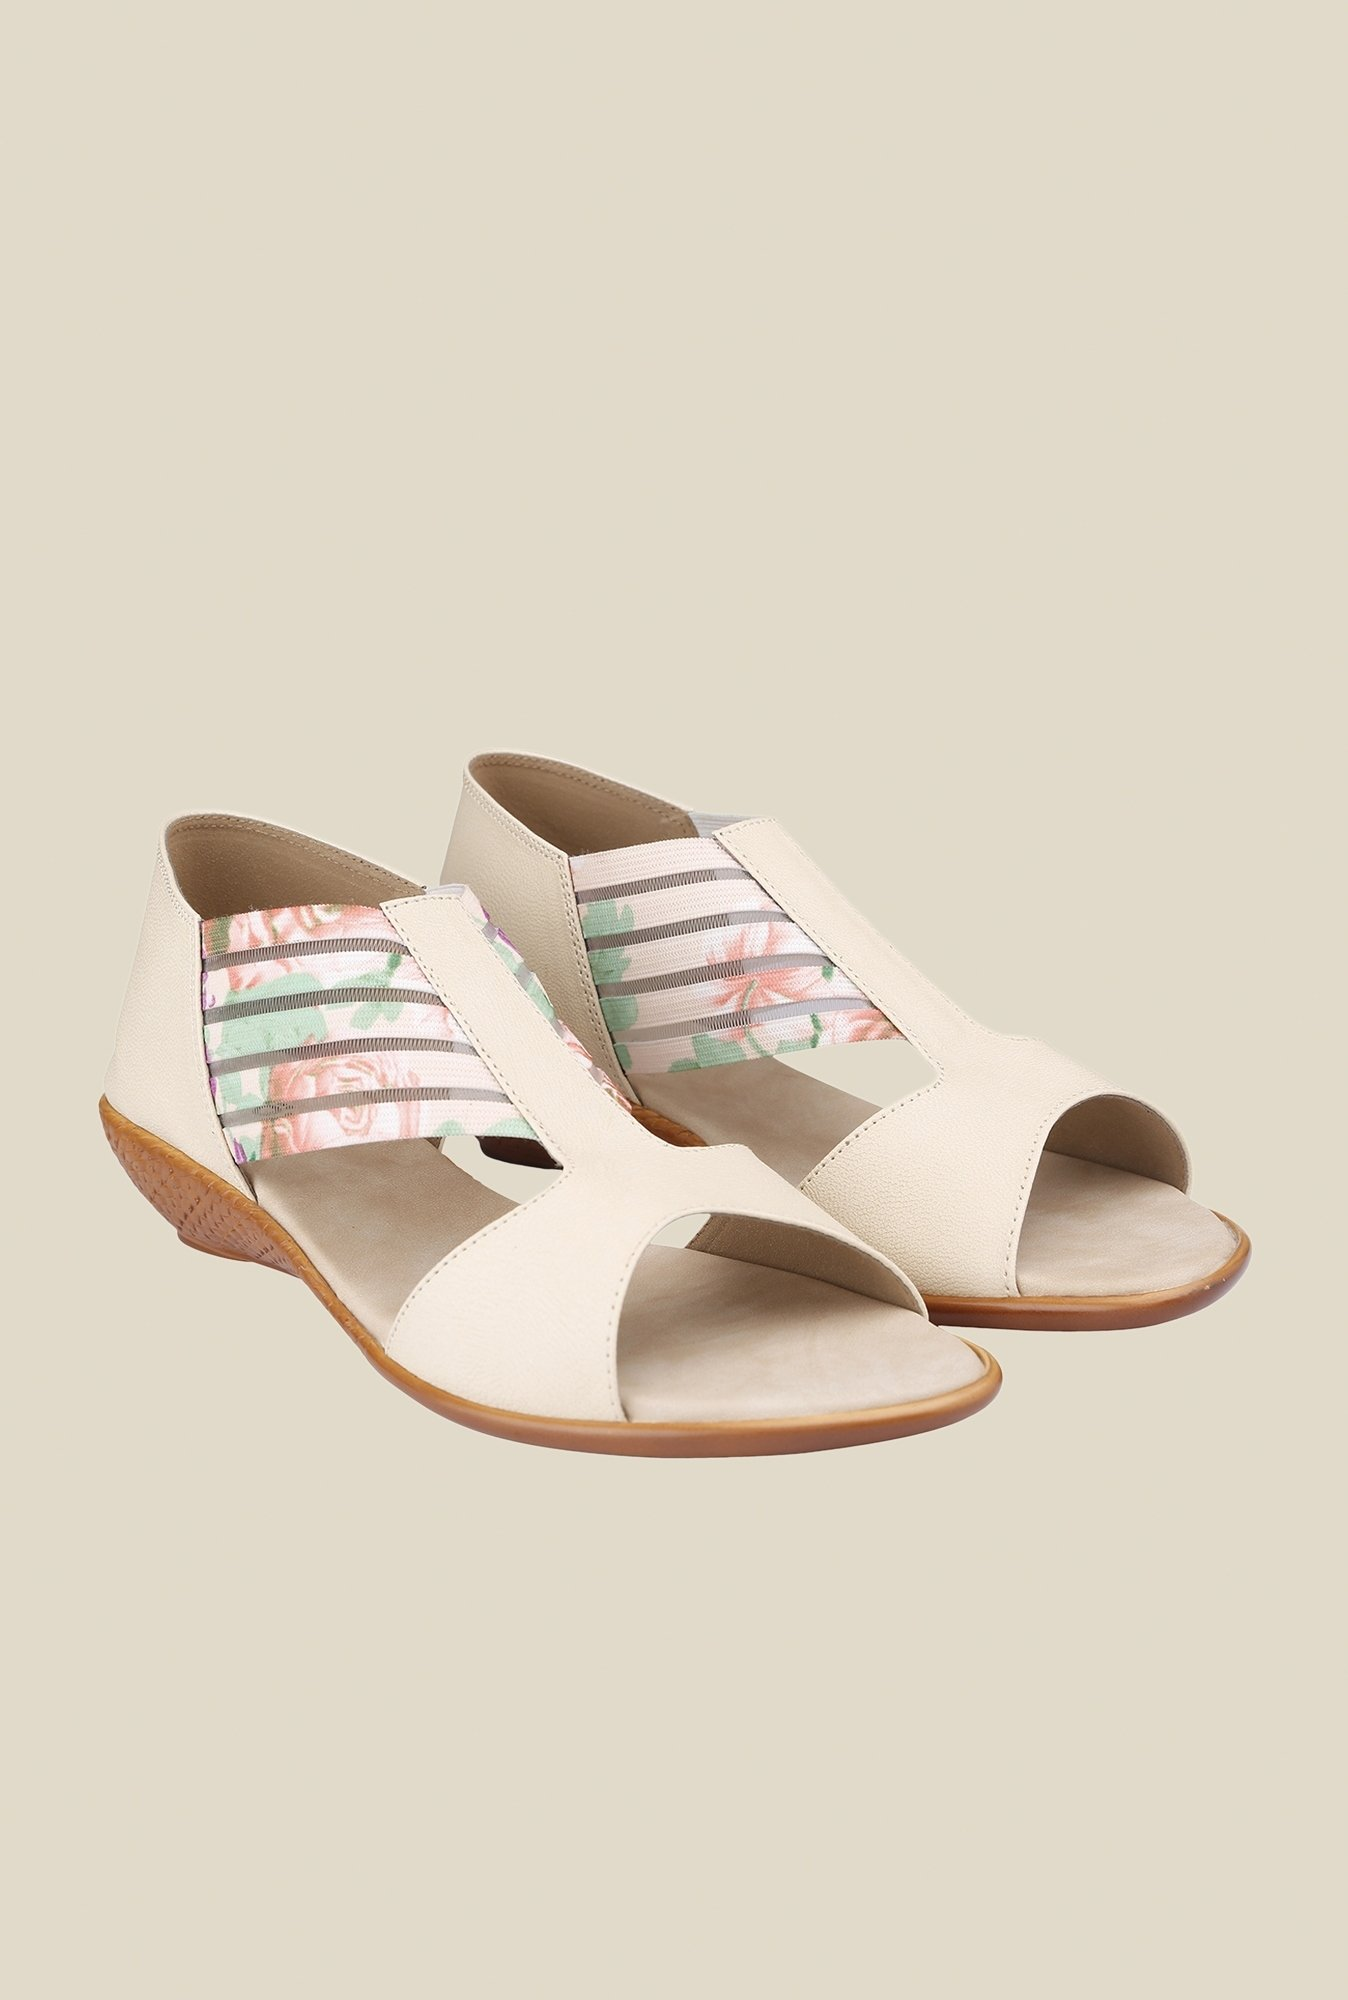 Cocoon Beige Wedge Heeled Sandals